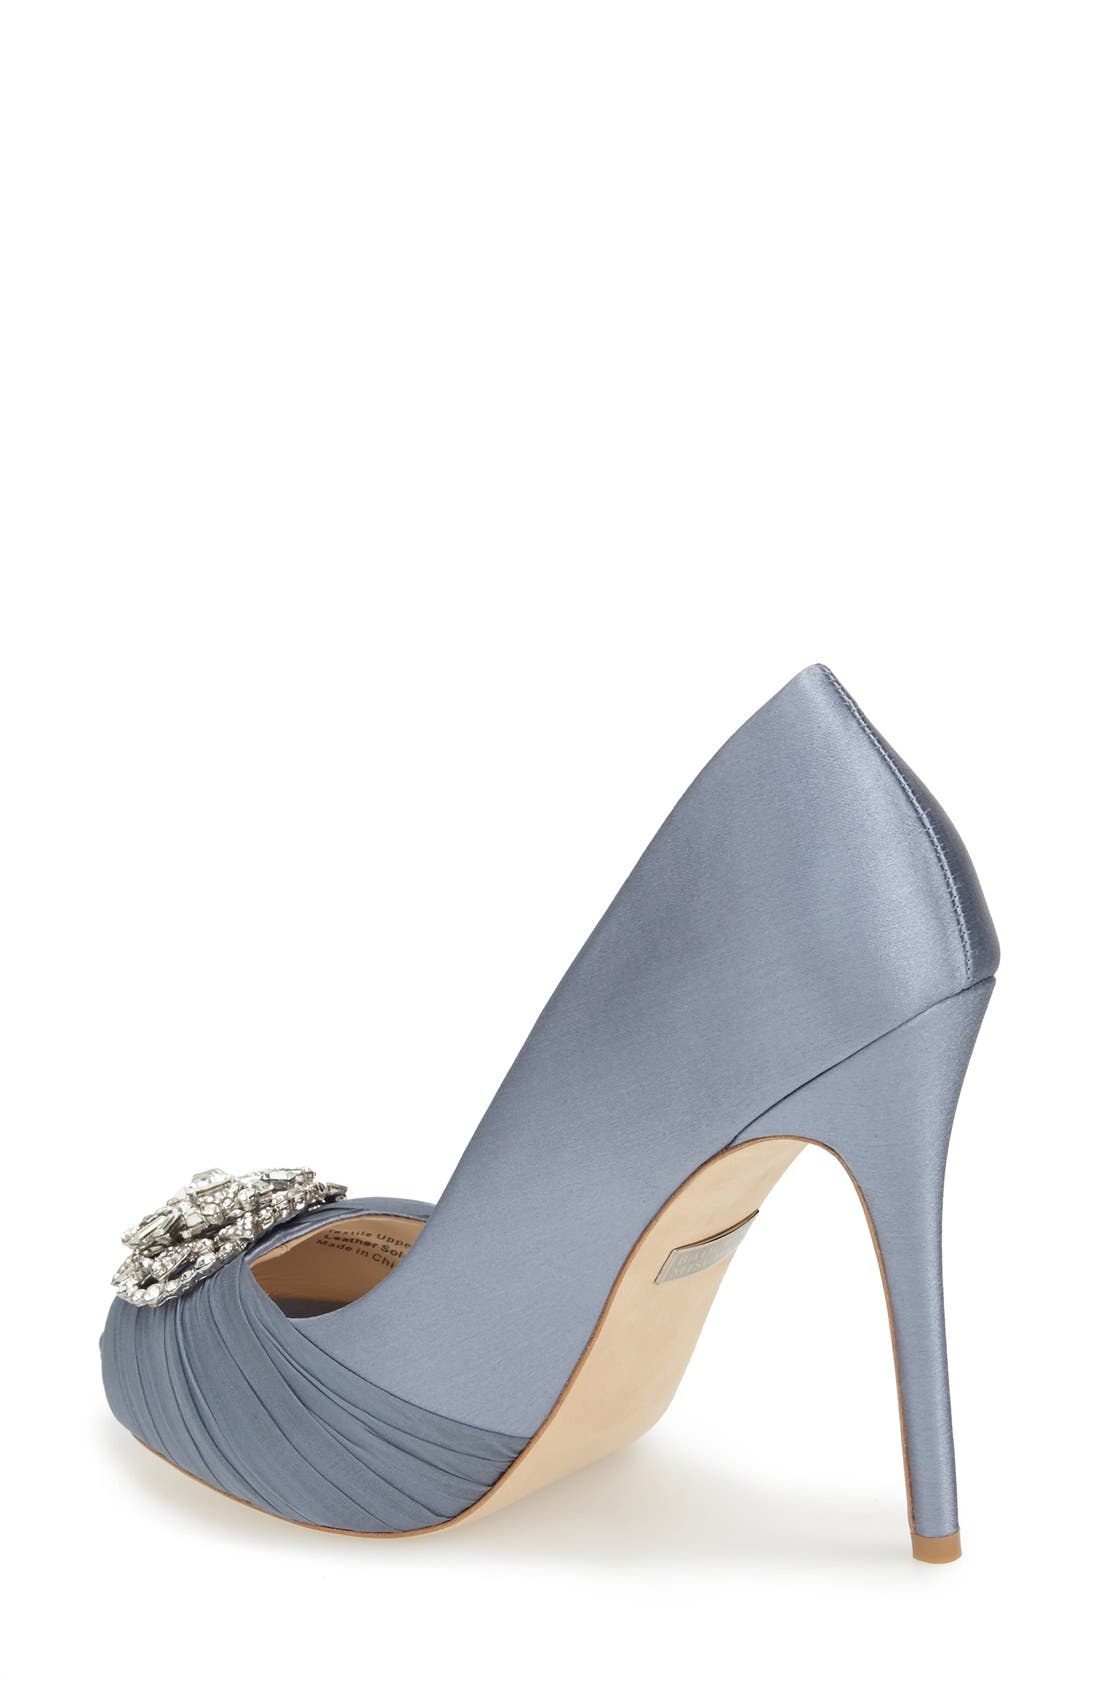 Alternate Image 2  - Badgley Mischka 'Desi' Peep Toe Platform Pump (Women)